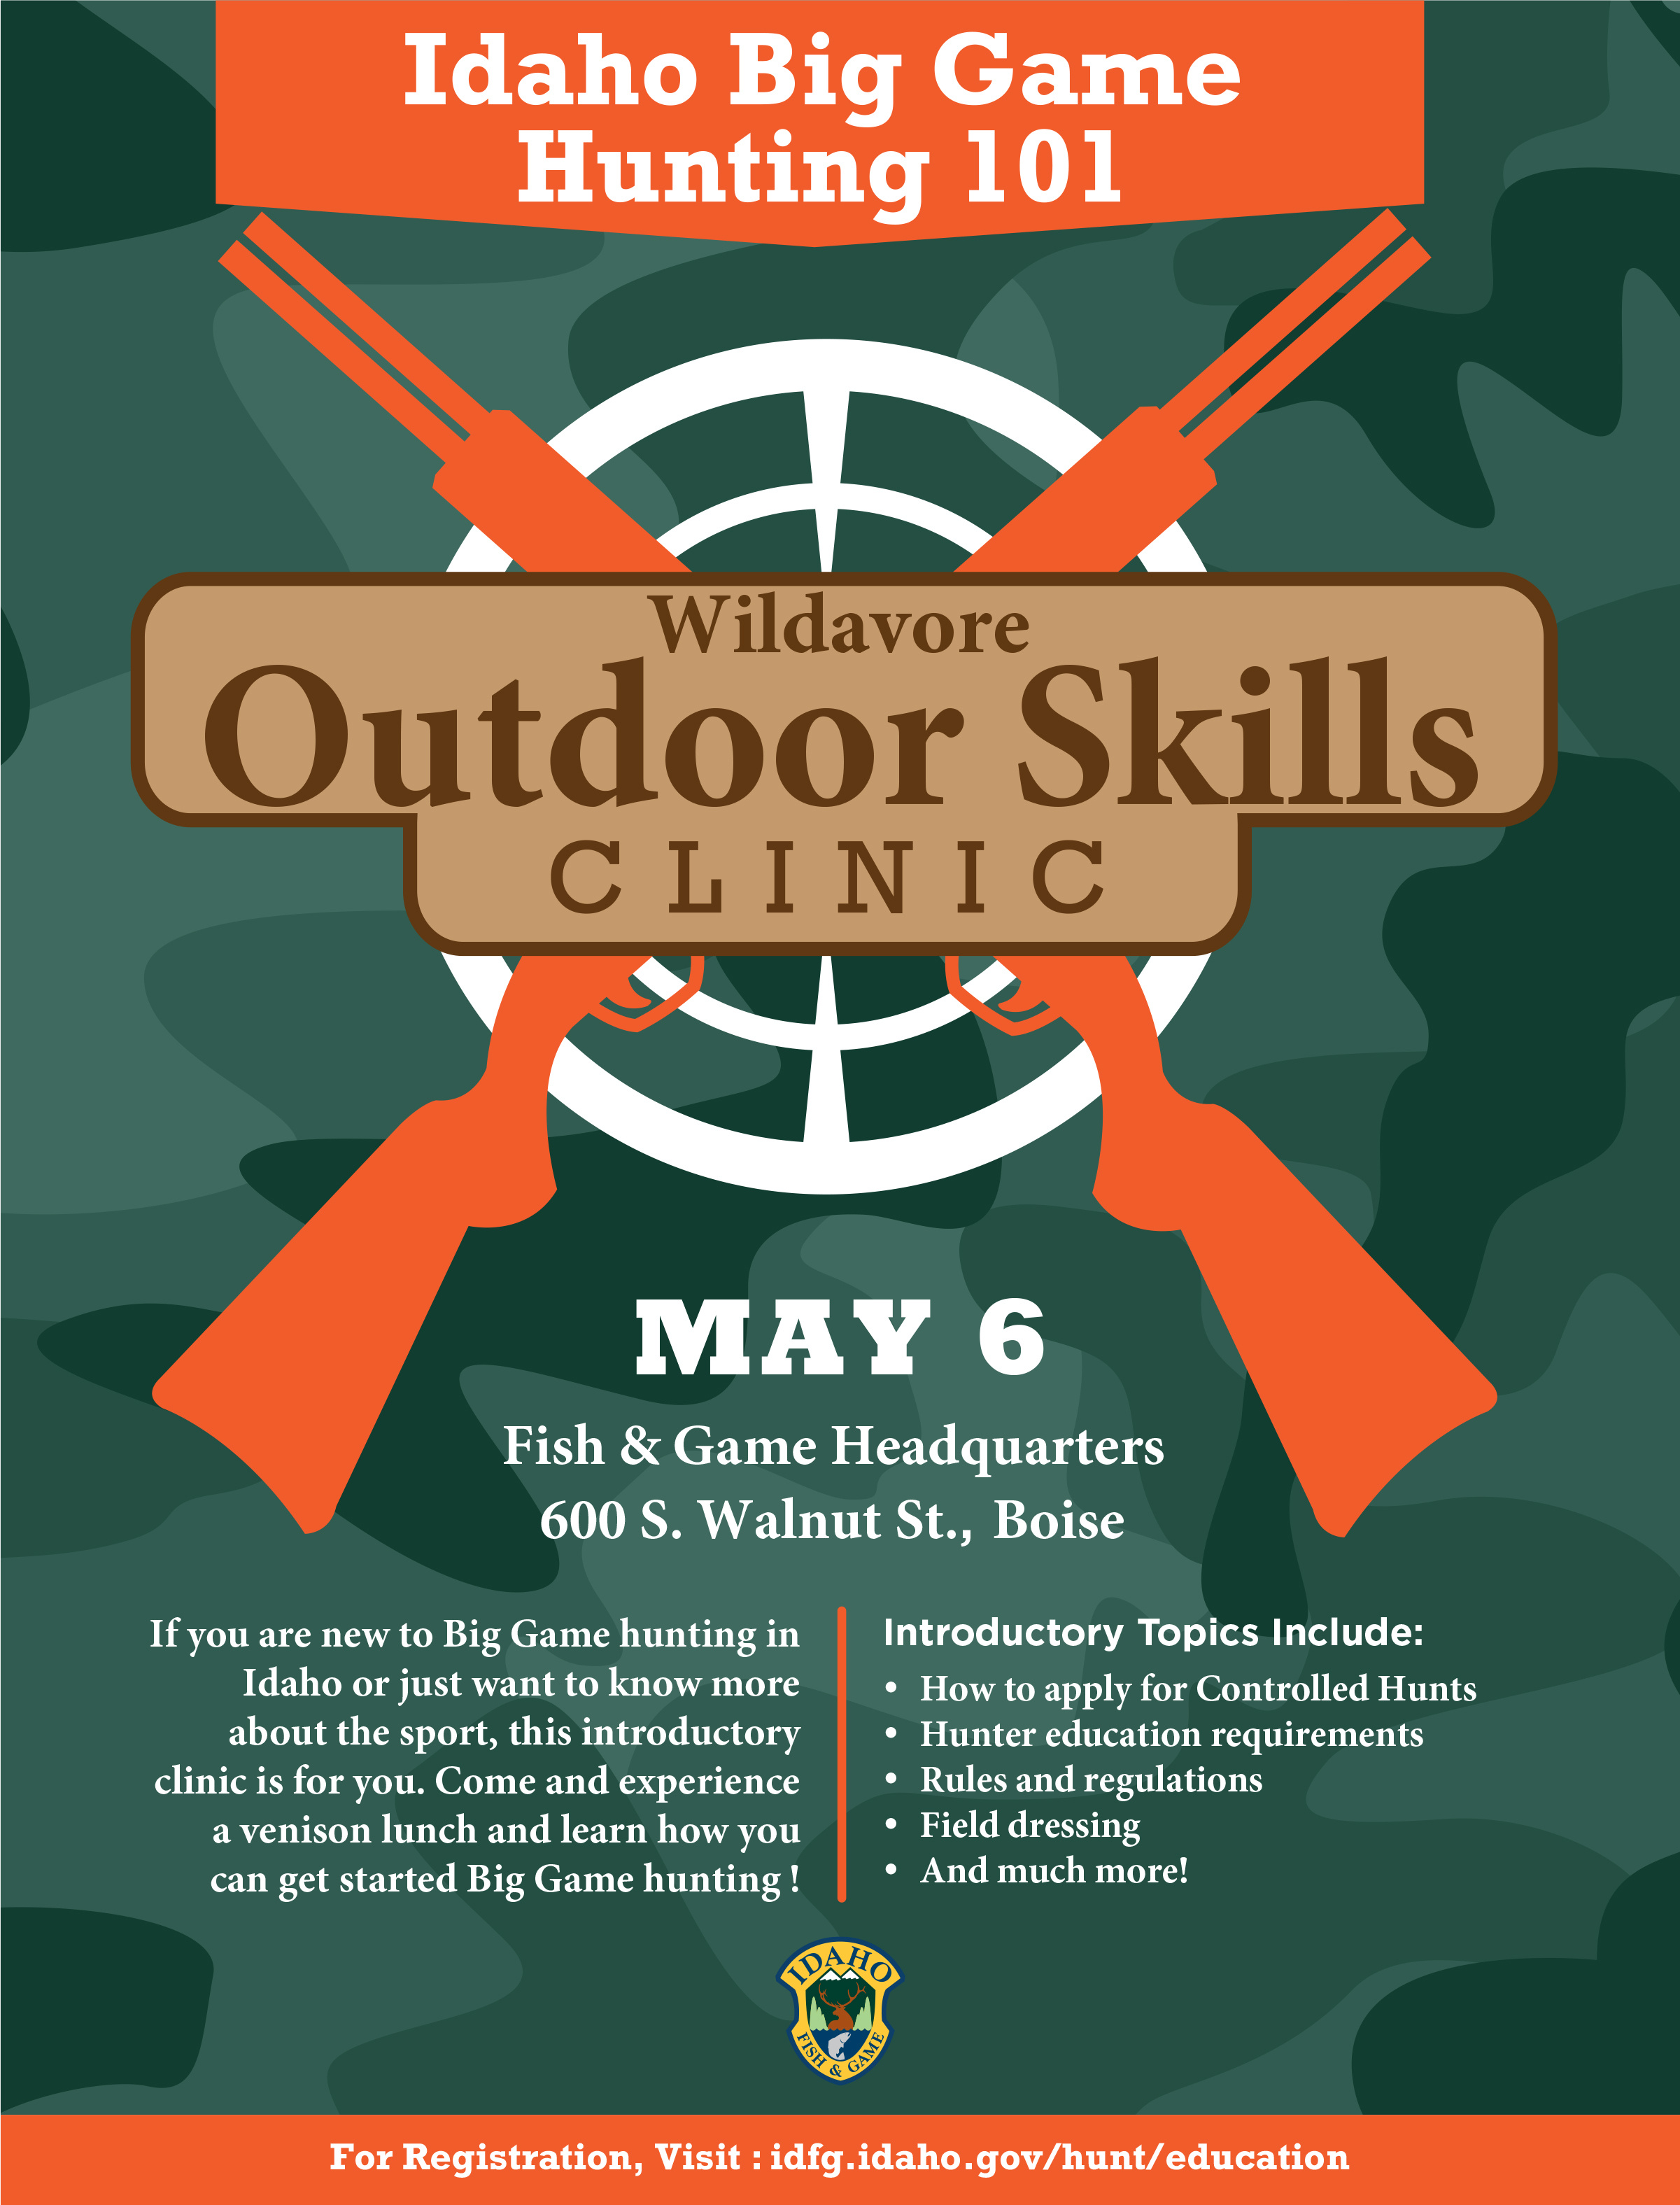 Outdoor skills workshop slated idaho fish and game for Idaho dept of fish and game